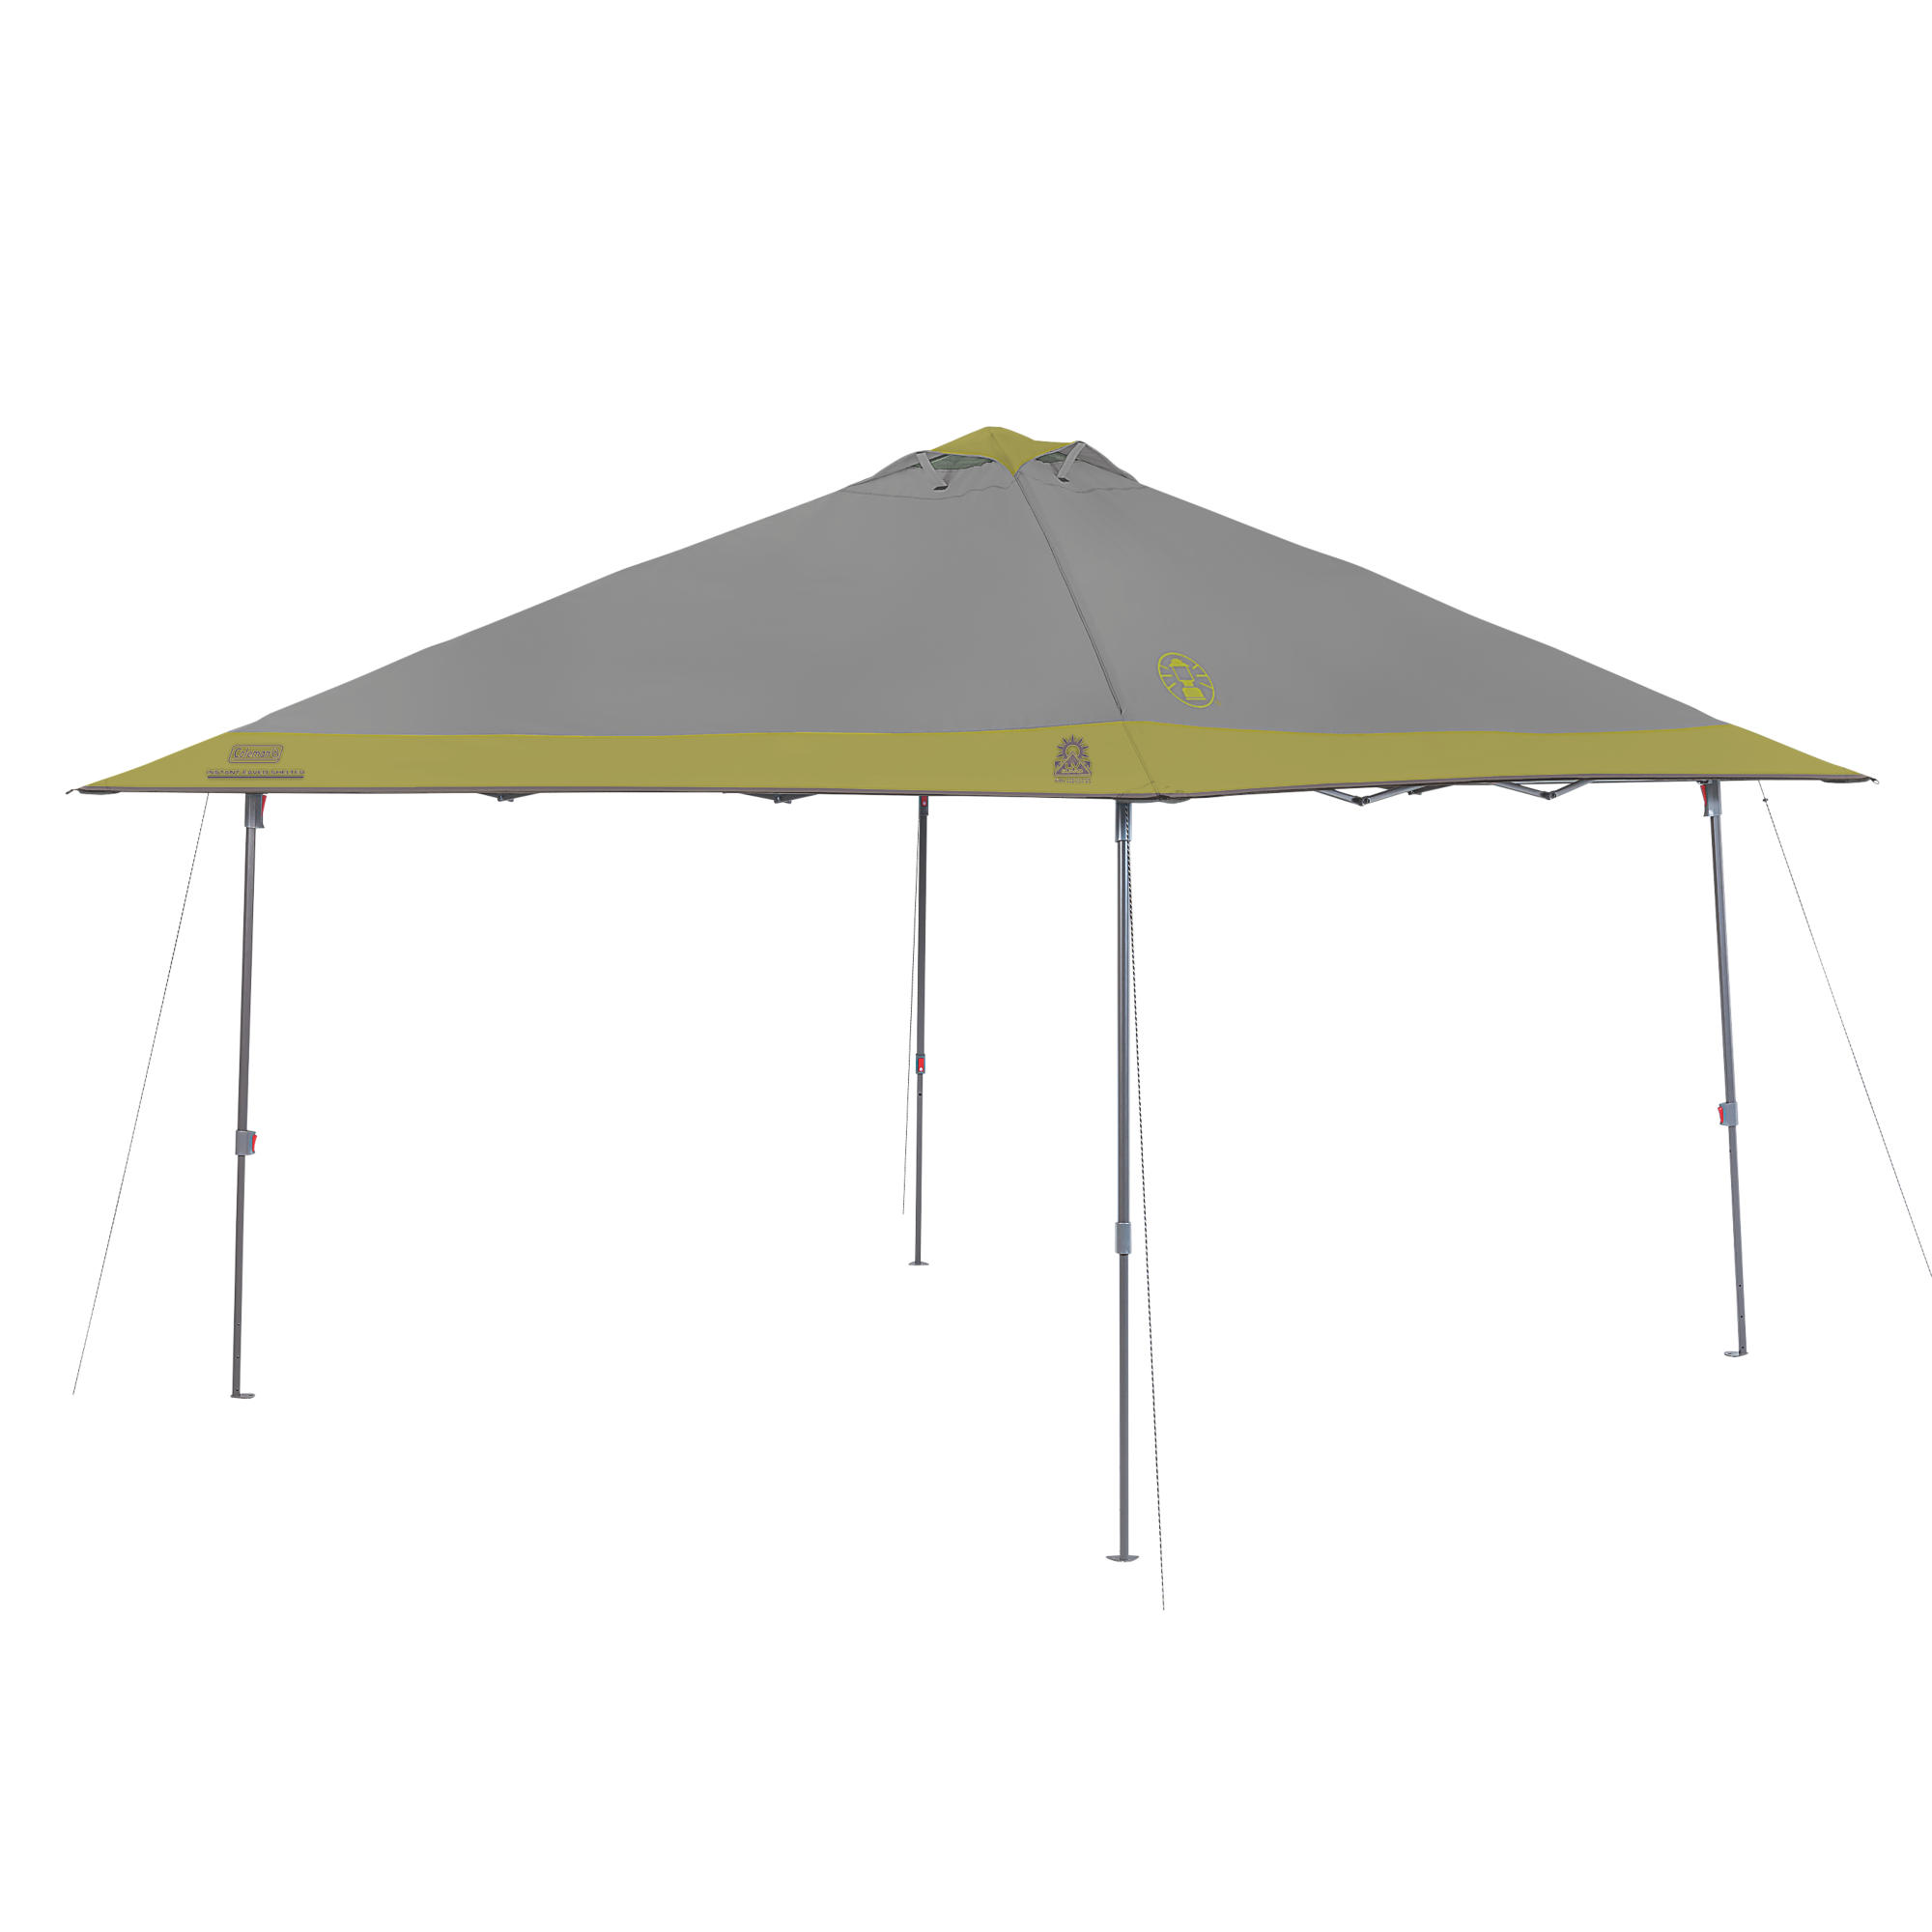 replacement parts x up system light sunwall best coleman lighting tent led with instant canopy walmart